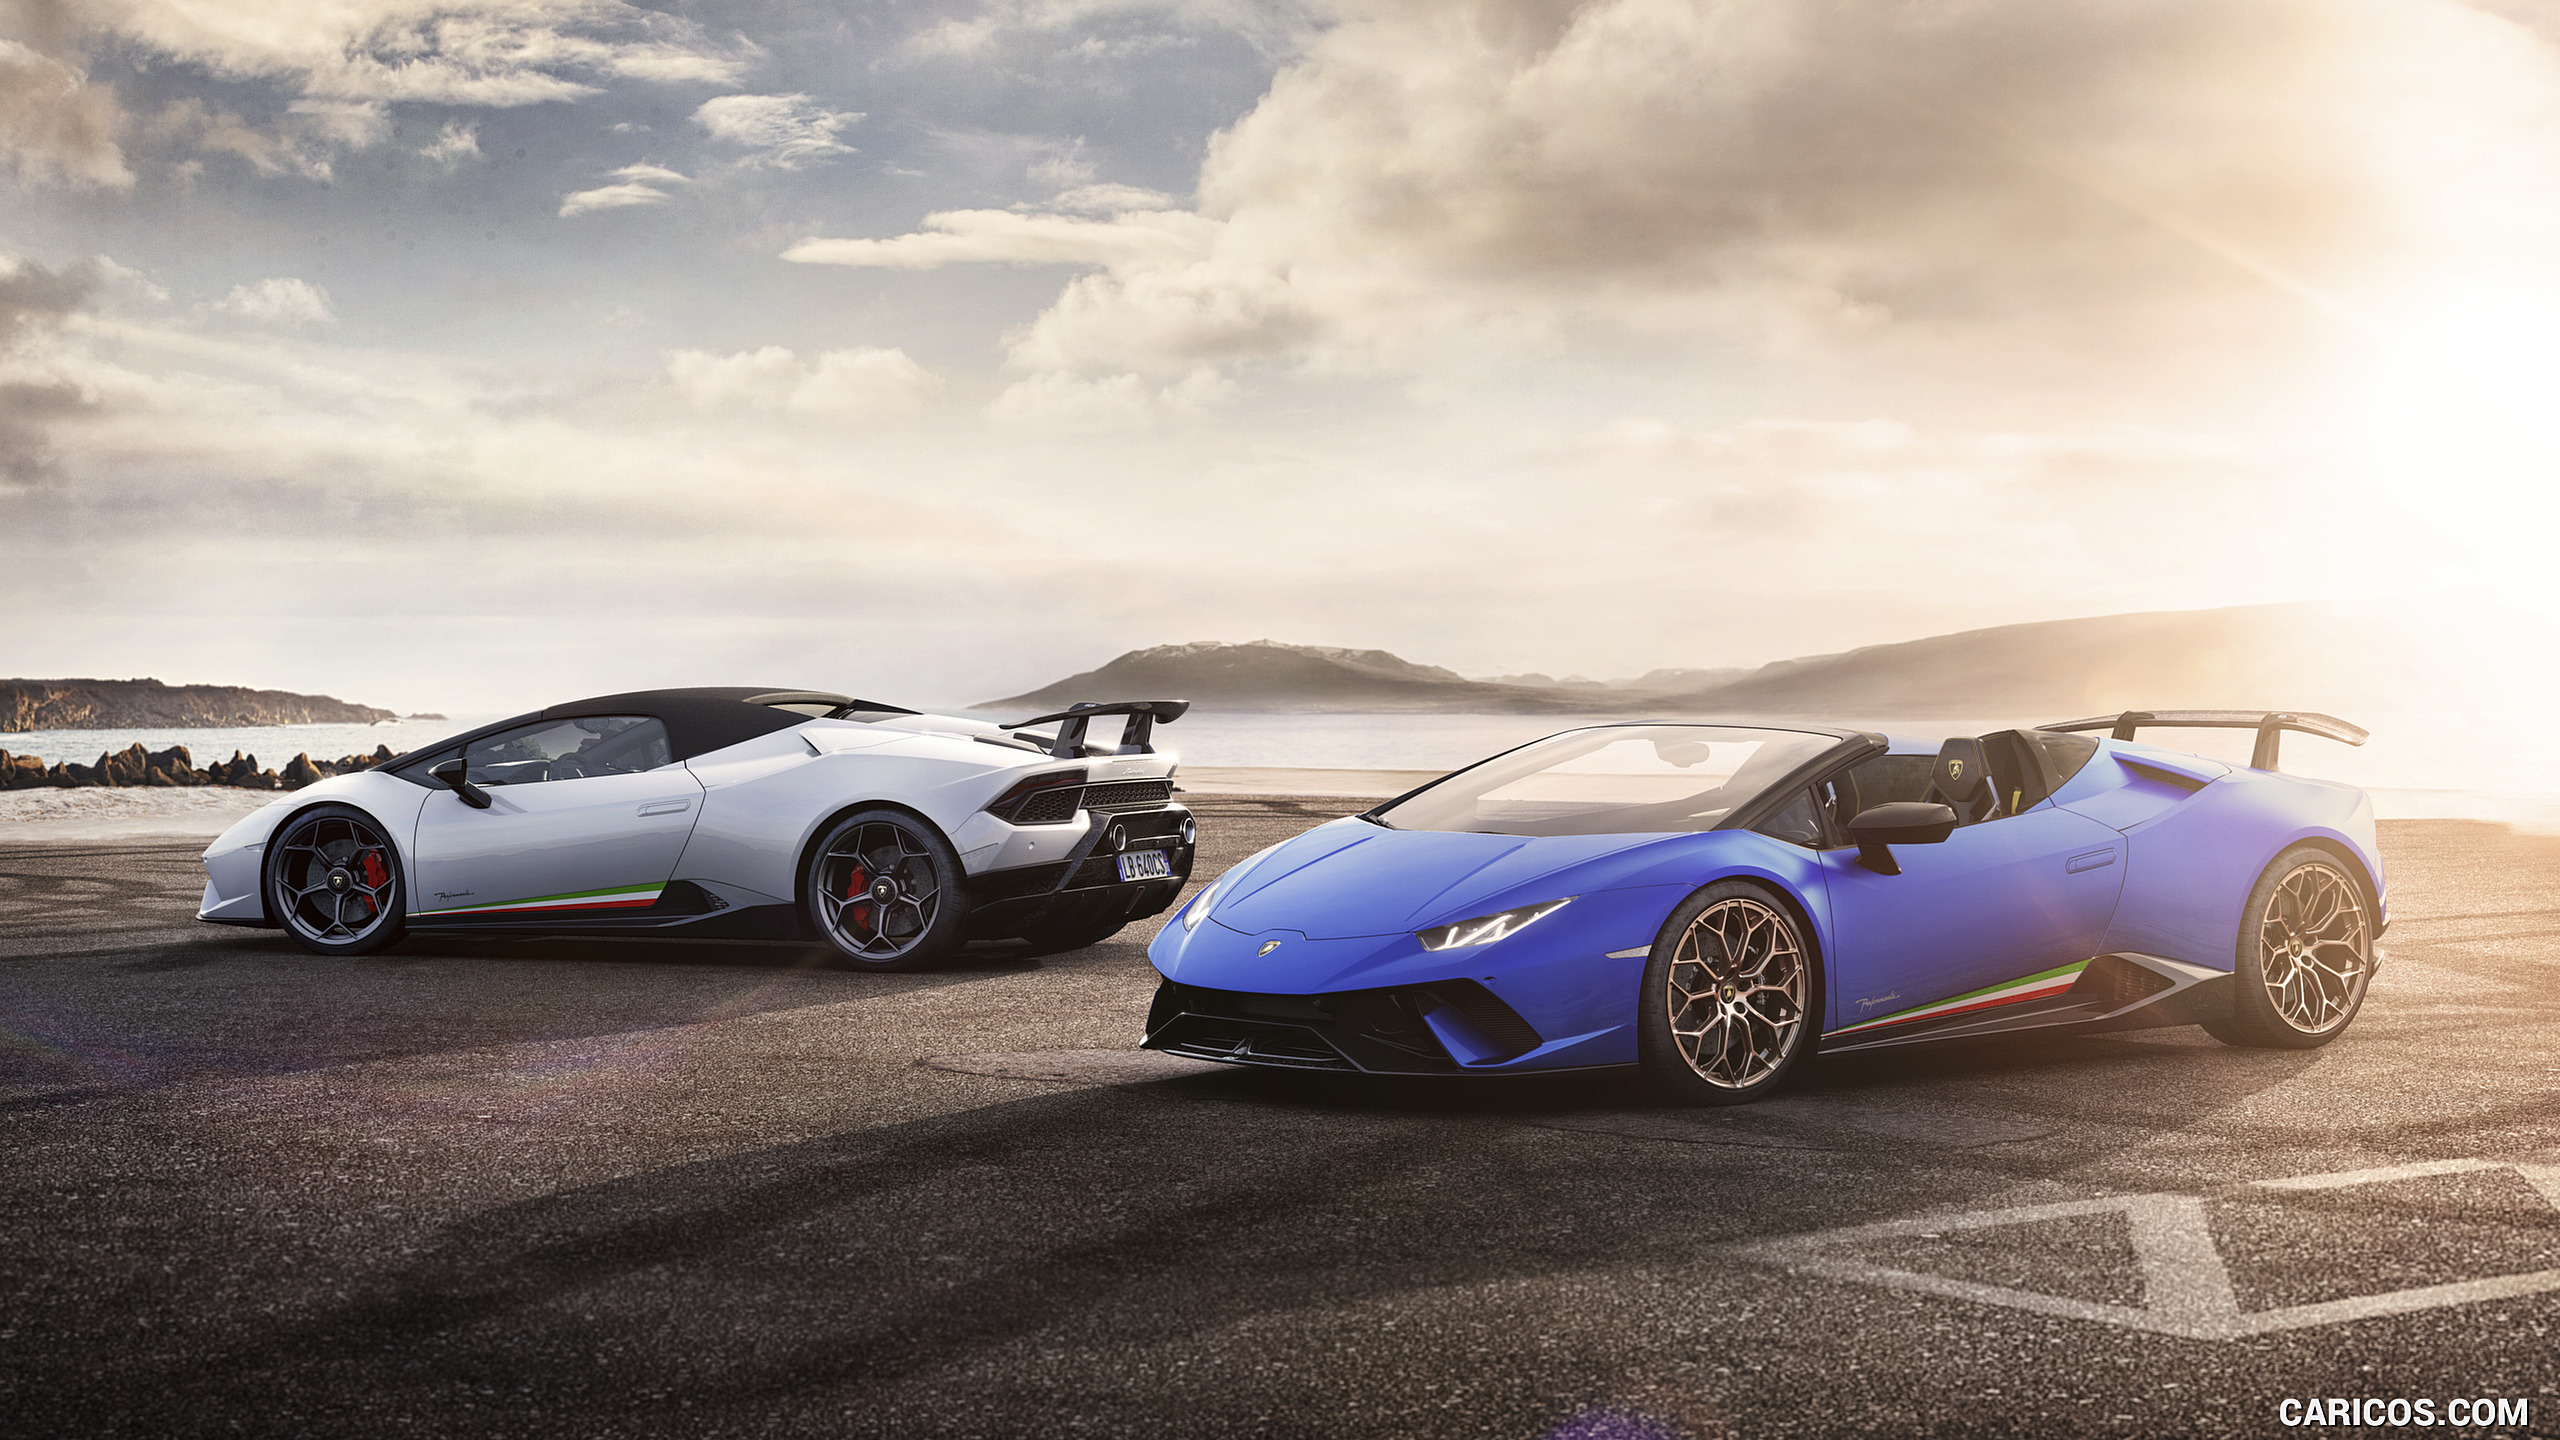 2019 Lamborghini Huracn Spyder Performante HD Wallpaper 4 2560x1440